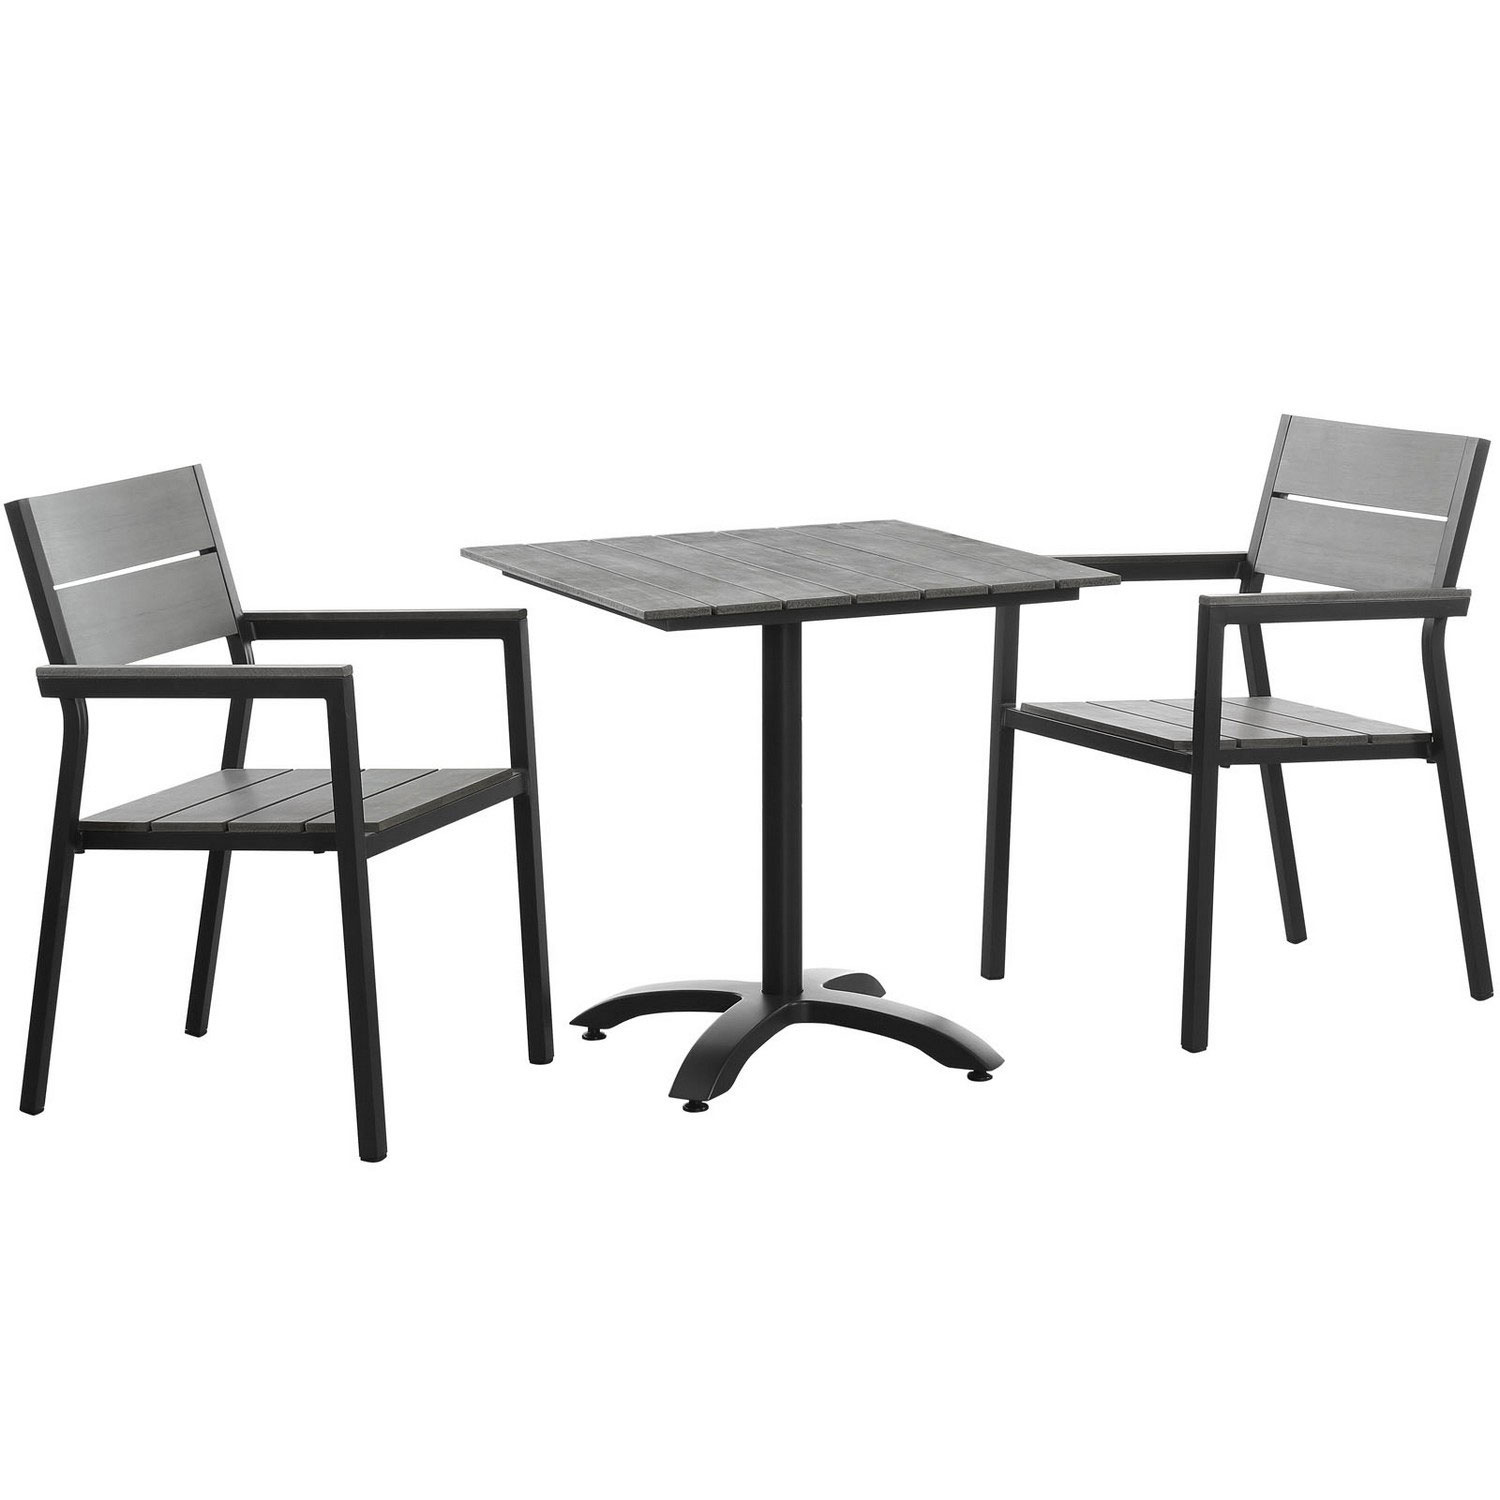 Modway Maine 3 Piece Outdoor Patio Dining Set - Brown/Gray